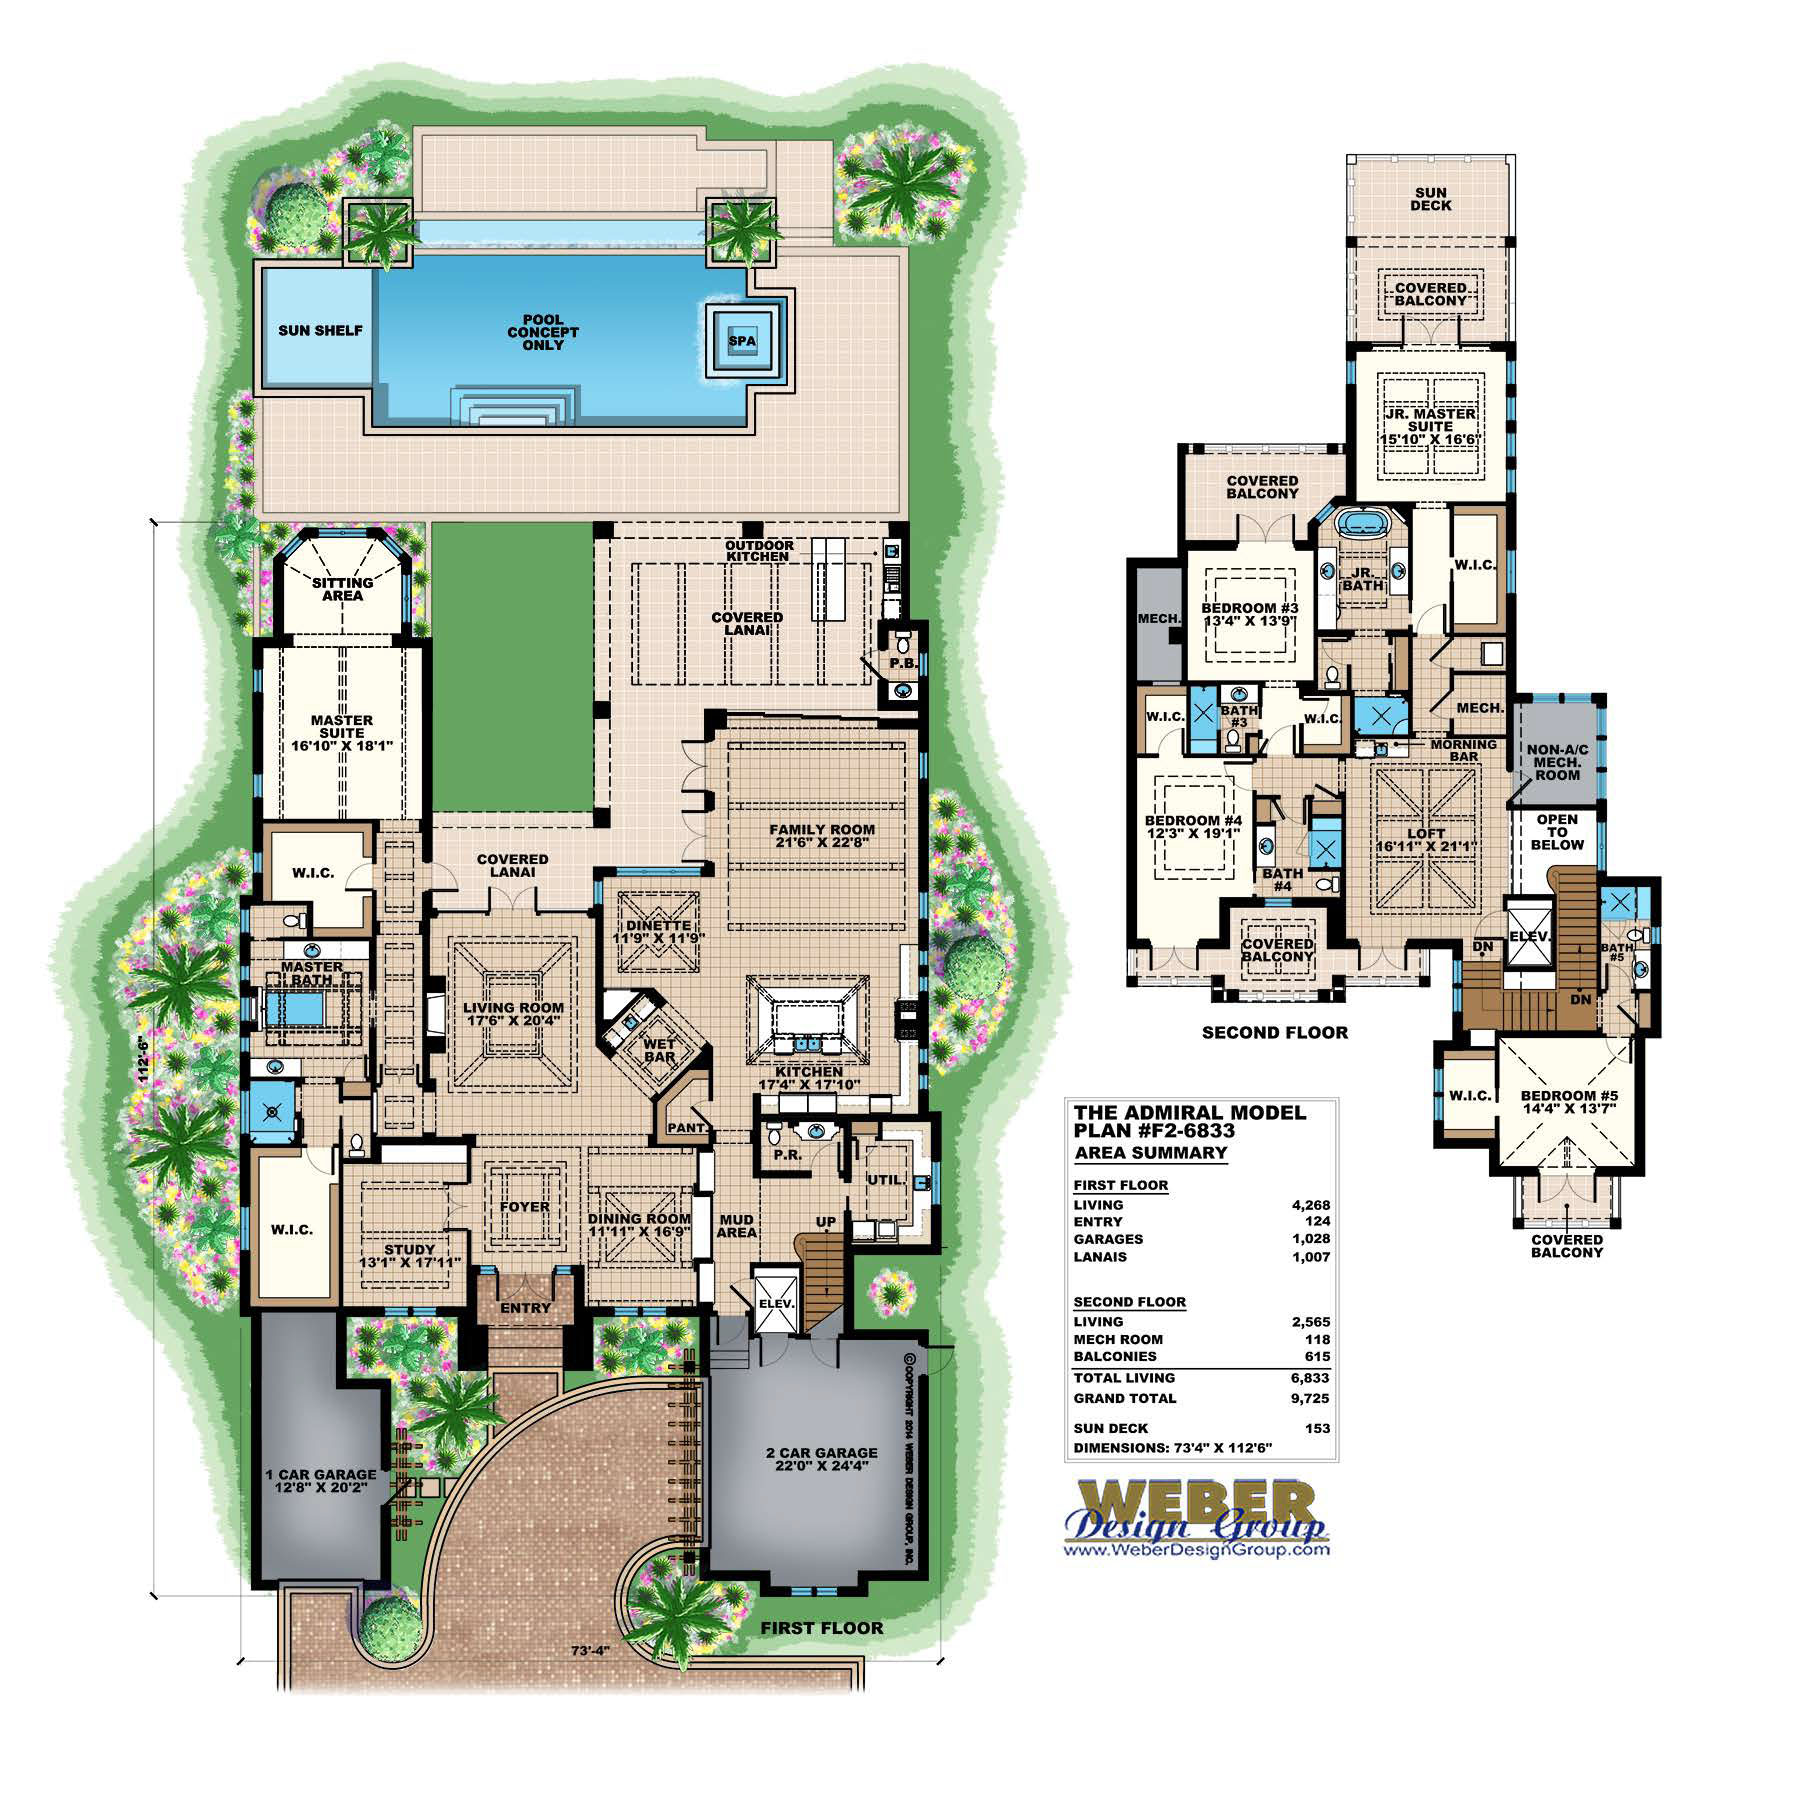 Unique House Plans floor plans lrg c96d139e9b61172a unusual house designs floor plans Admiral House Plan